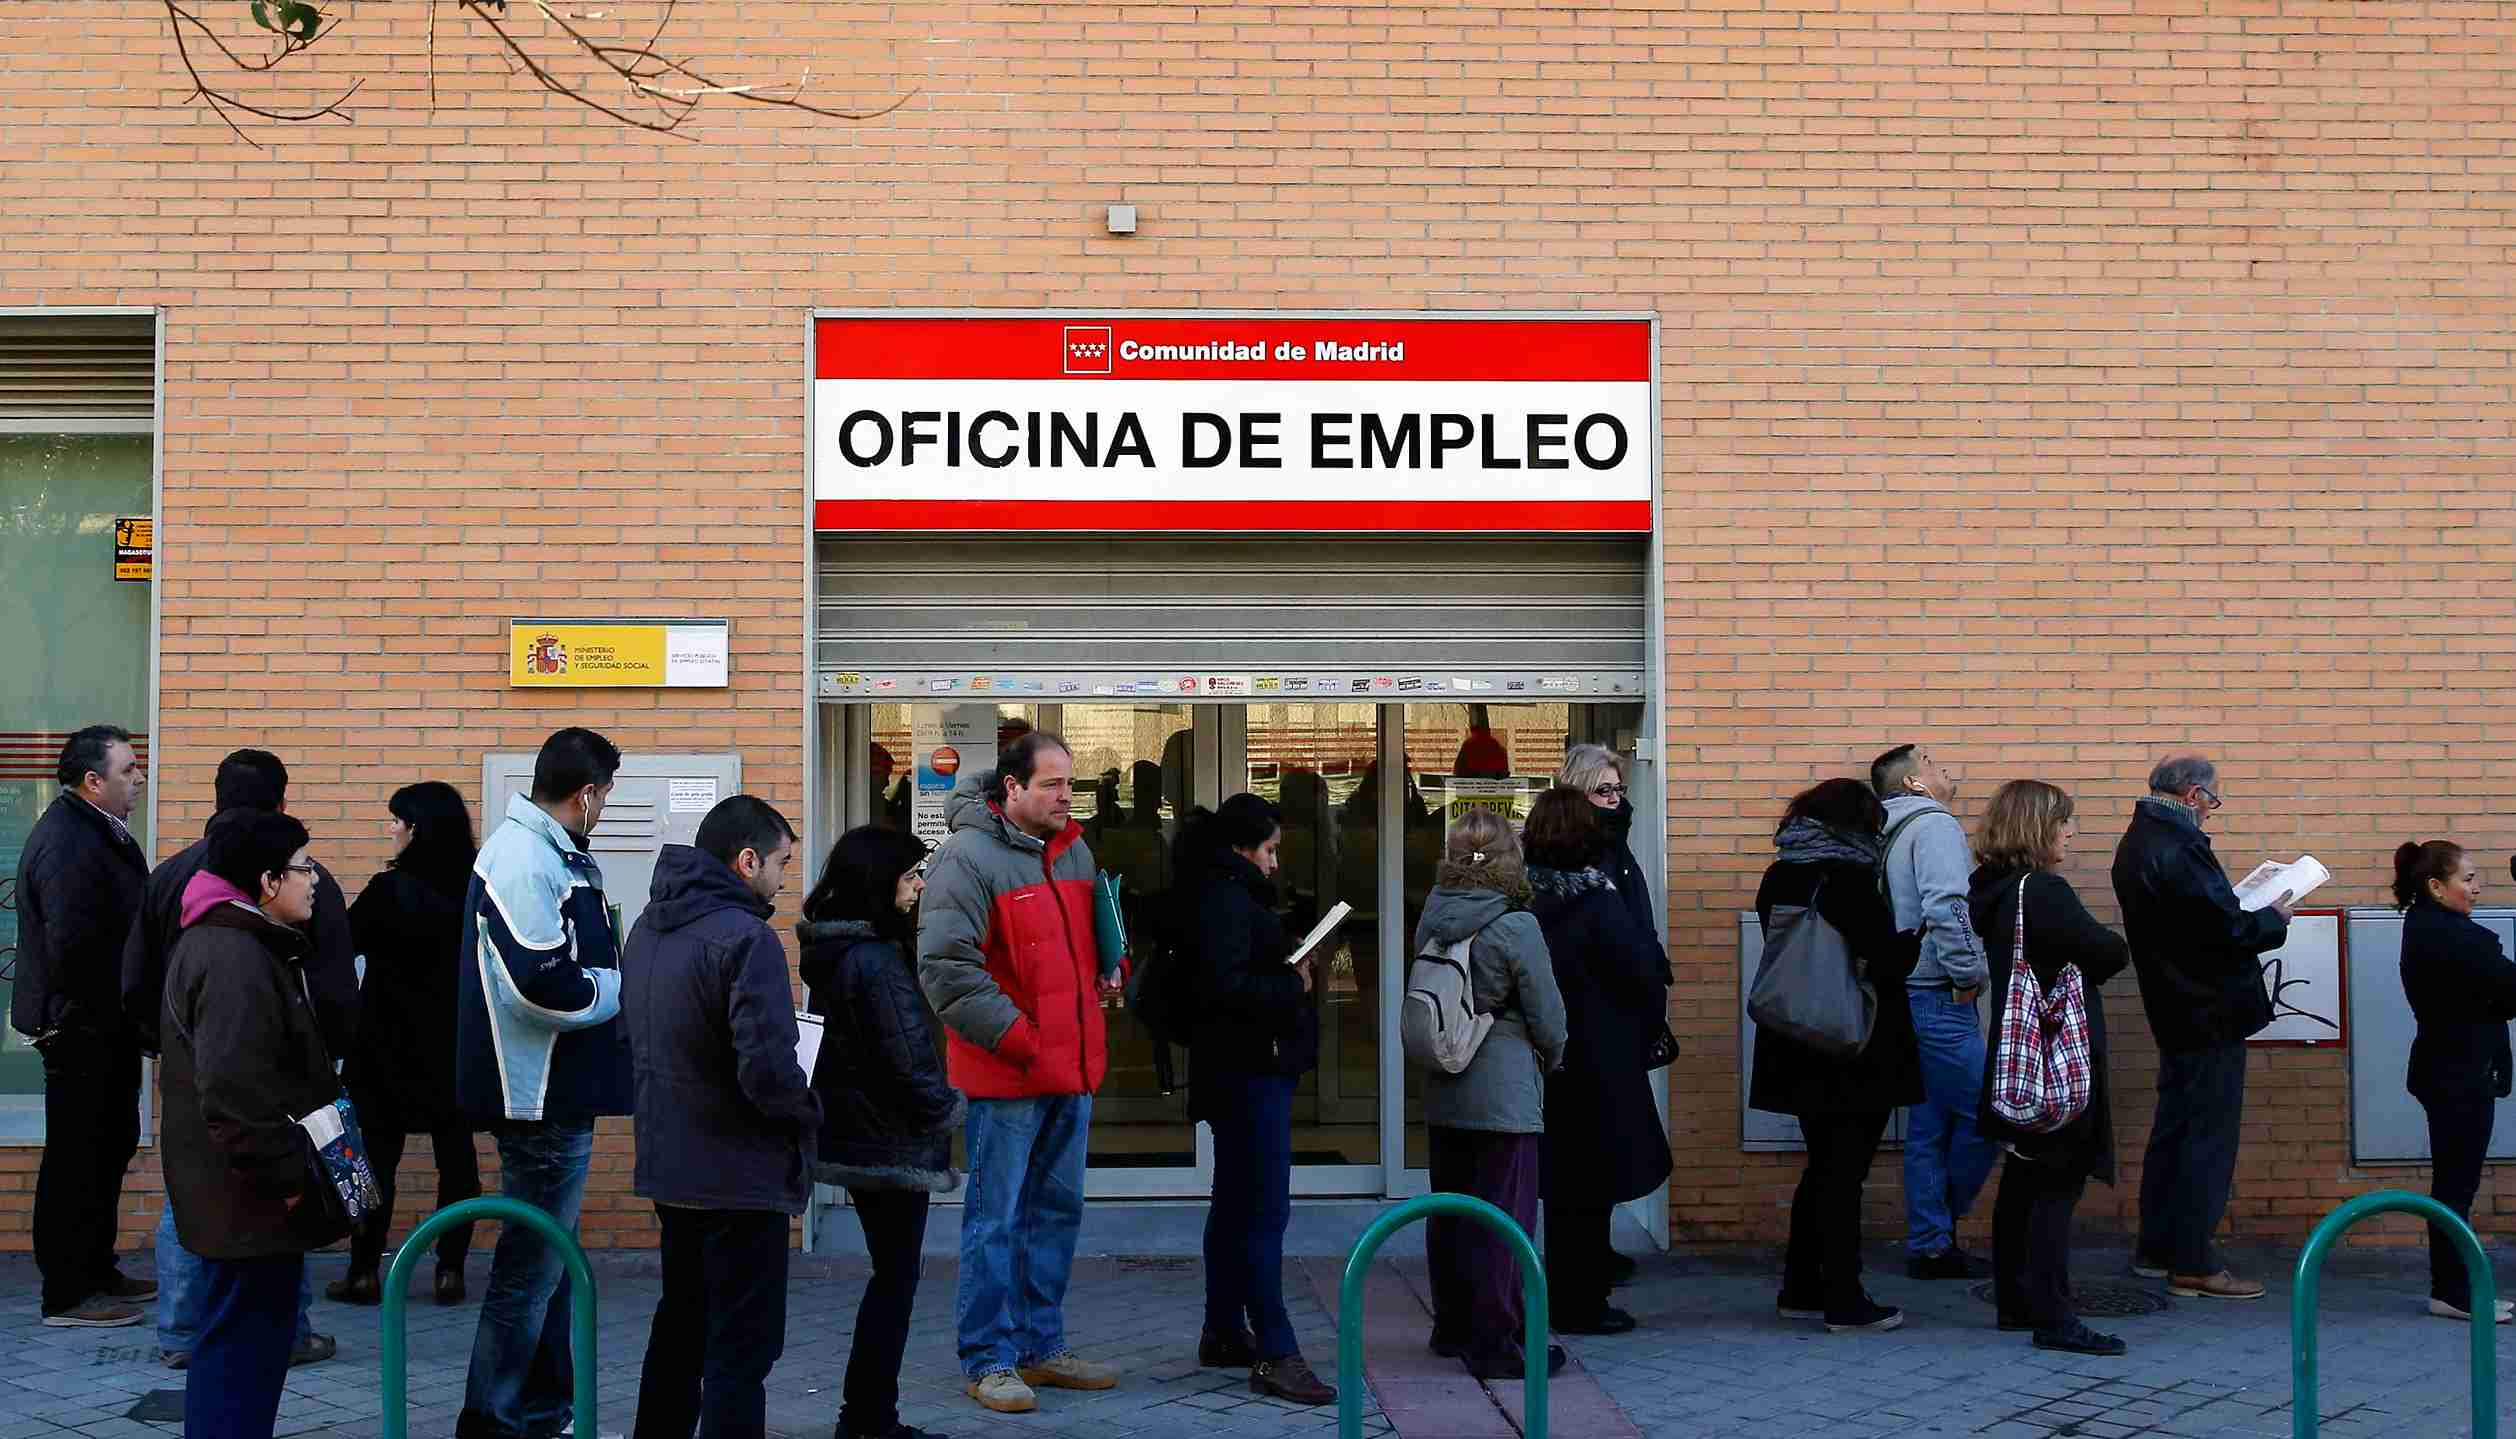 People wait in line in front of a government-run employment office in Madrid March 4, 2014. The number of registered jobless in Spain fell by 0.04 percent in February from a month earlier, or by 1,949 people, leaving 4.8 million people out of work, data from the Labour Ministry showed on Tuesday. It was the first time that the jobless figure fell in the month of February since the start of Spain's financial crisis in 2007. REUTERS/Andrea Comas (SPAIN - Tags: POLITICS BUSINESS EMPLOYMENT TPX IMAGES OF THE DAY) - GM1EA341GNO01